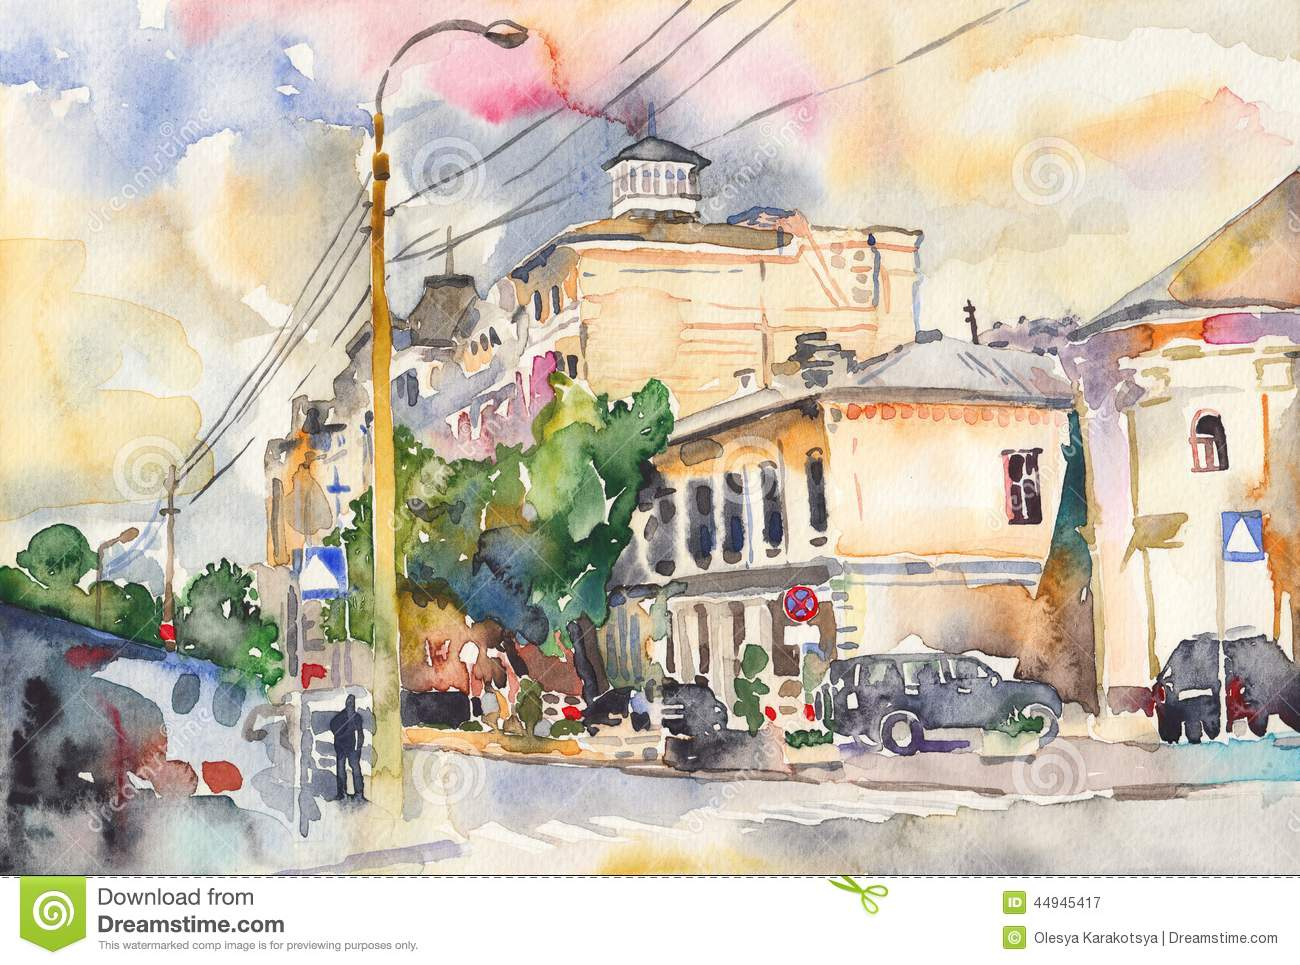 Paysage original de ville d 39 aquarelle illustration stock for Paysage de ville